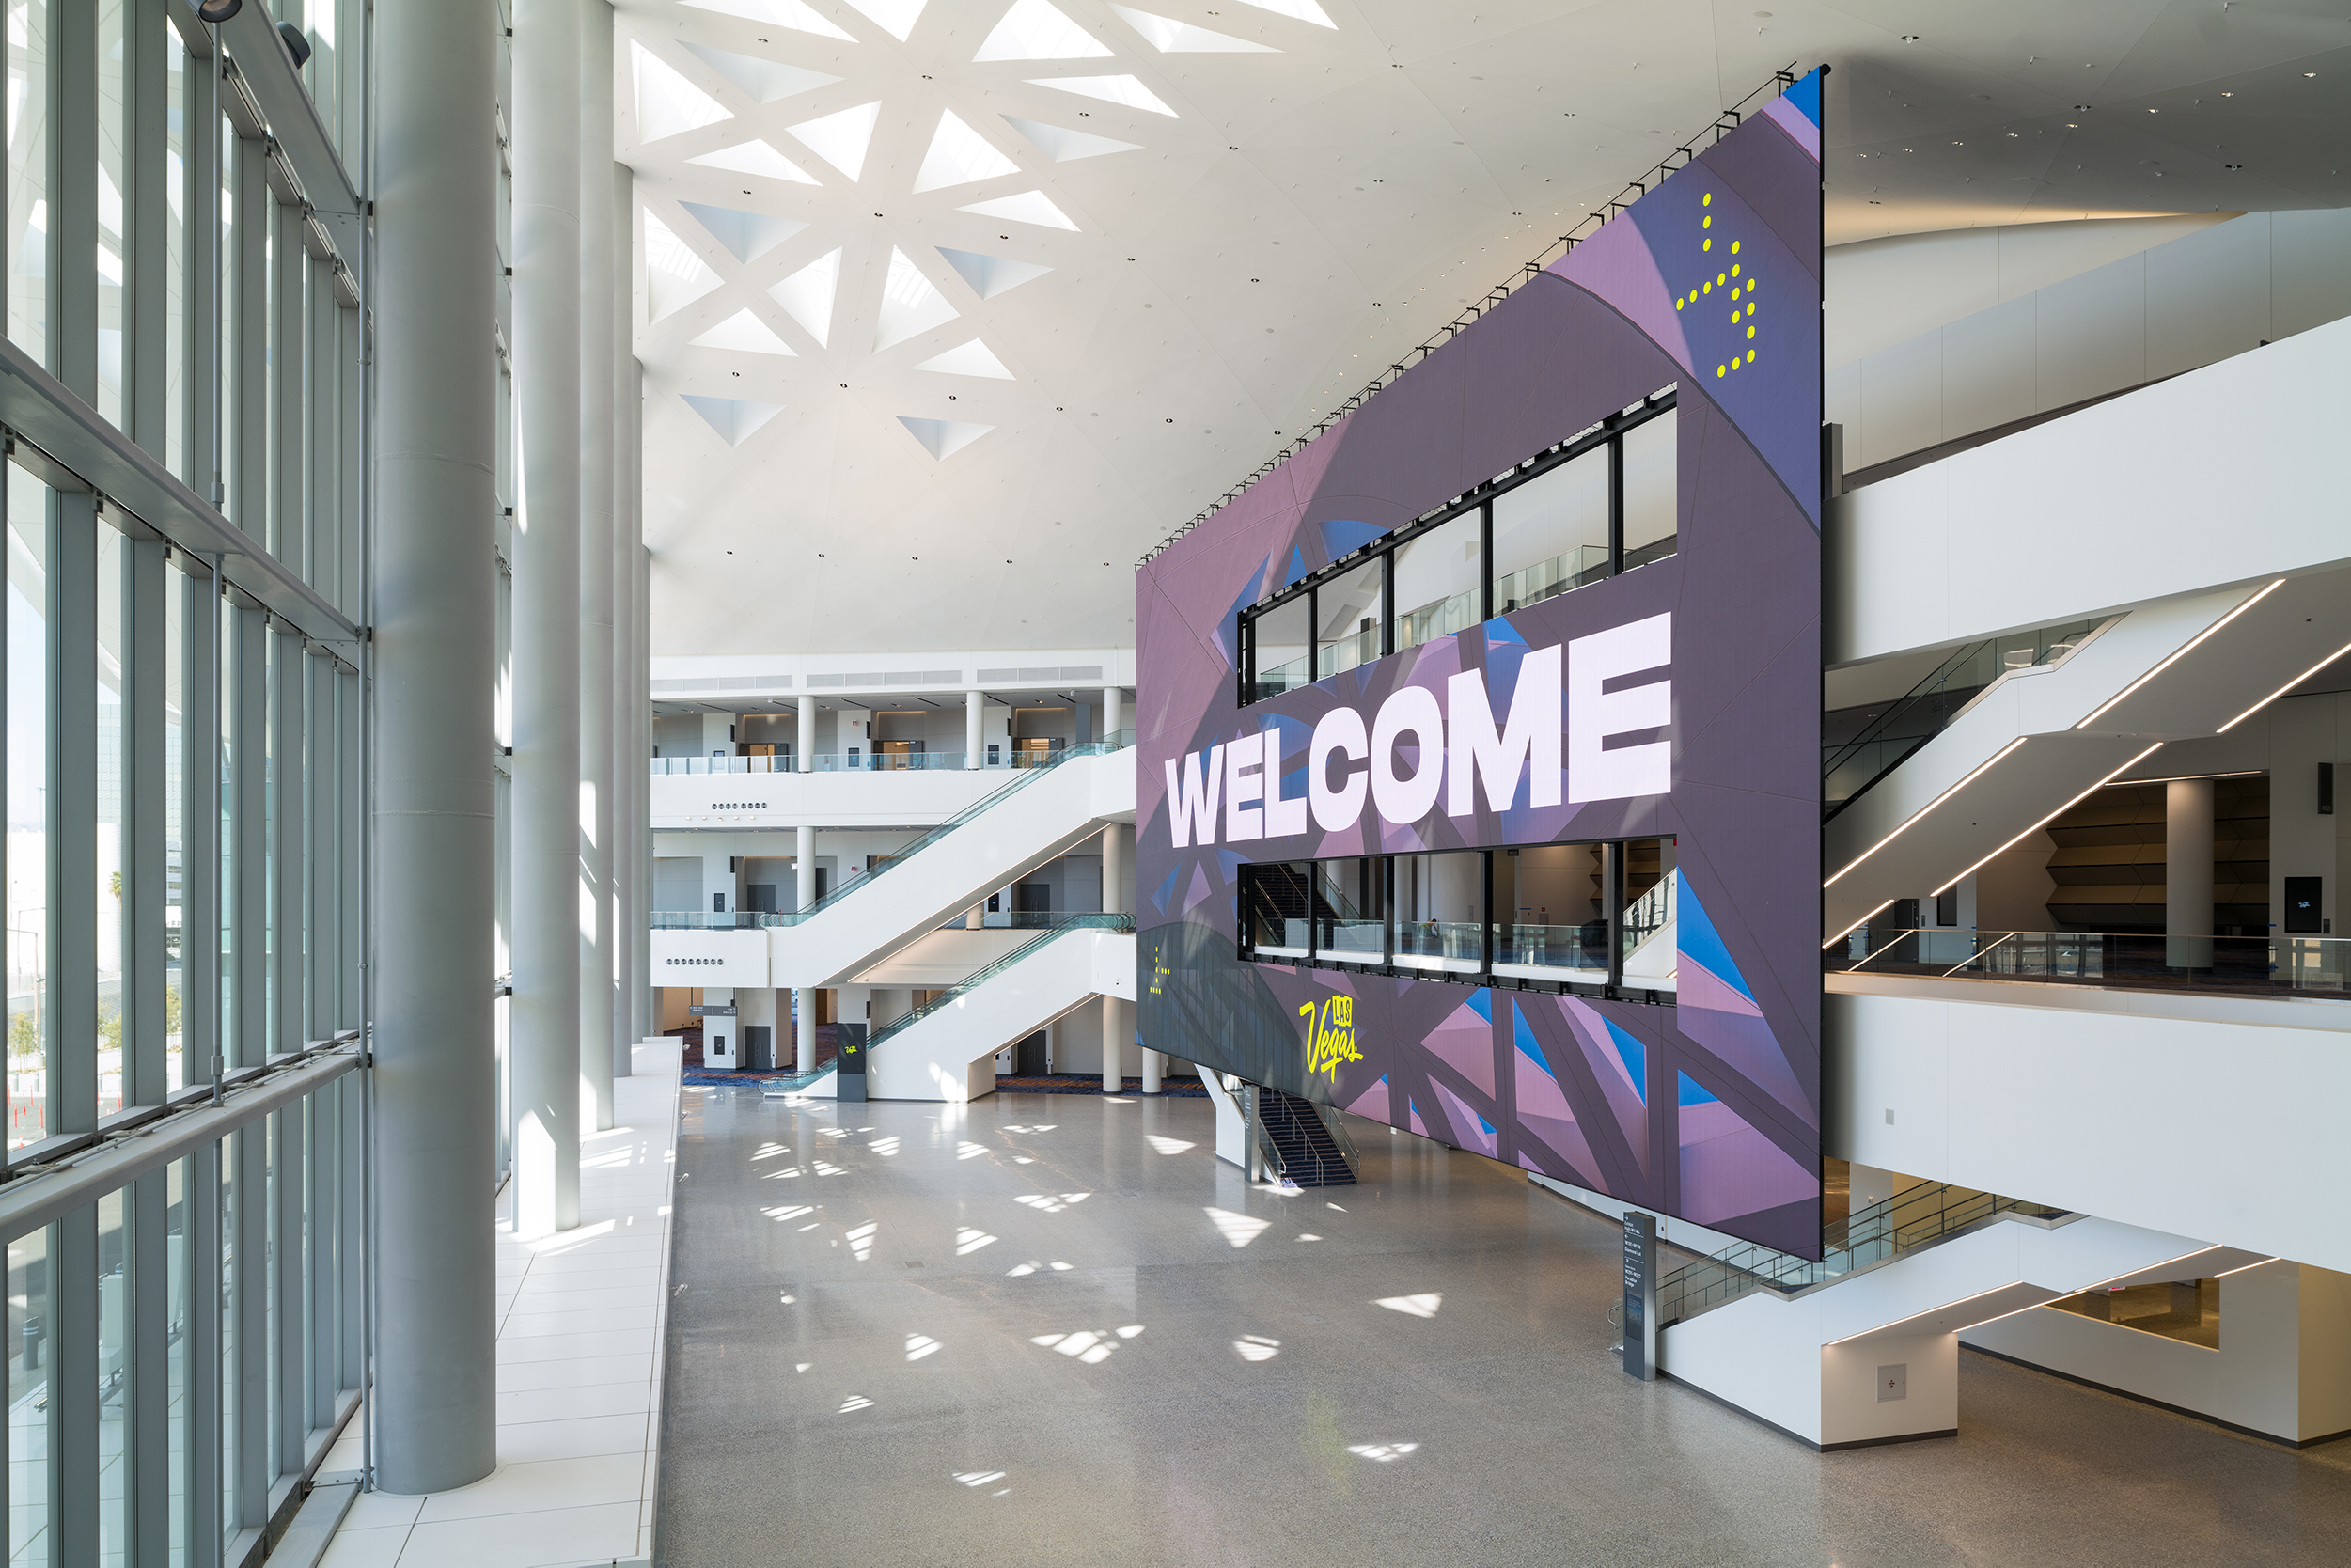 10,000 square foot video wall welcomes guests in the grand atrium of the Las Vegas Convention Center West Hall